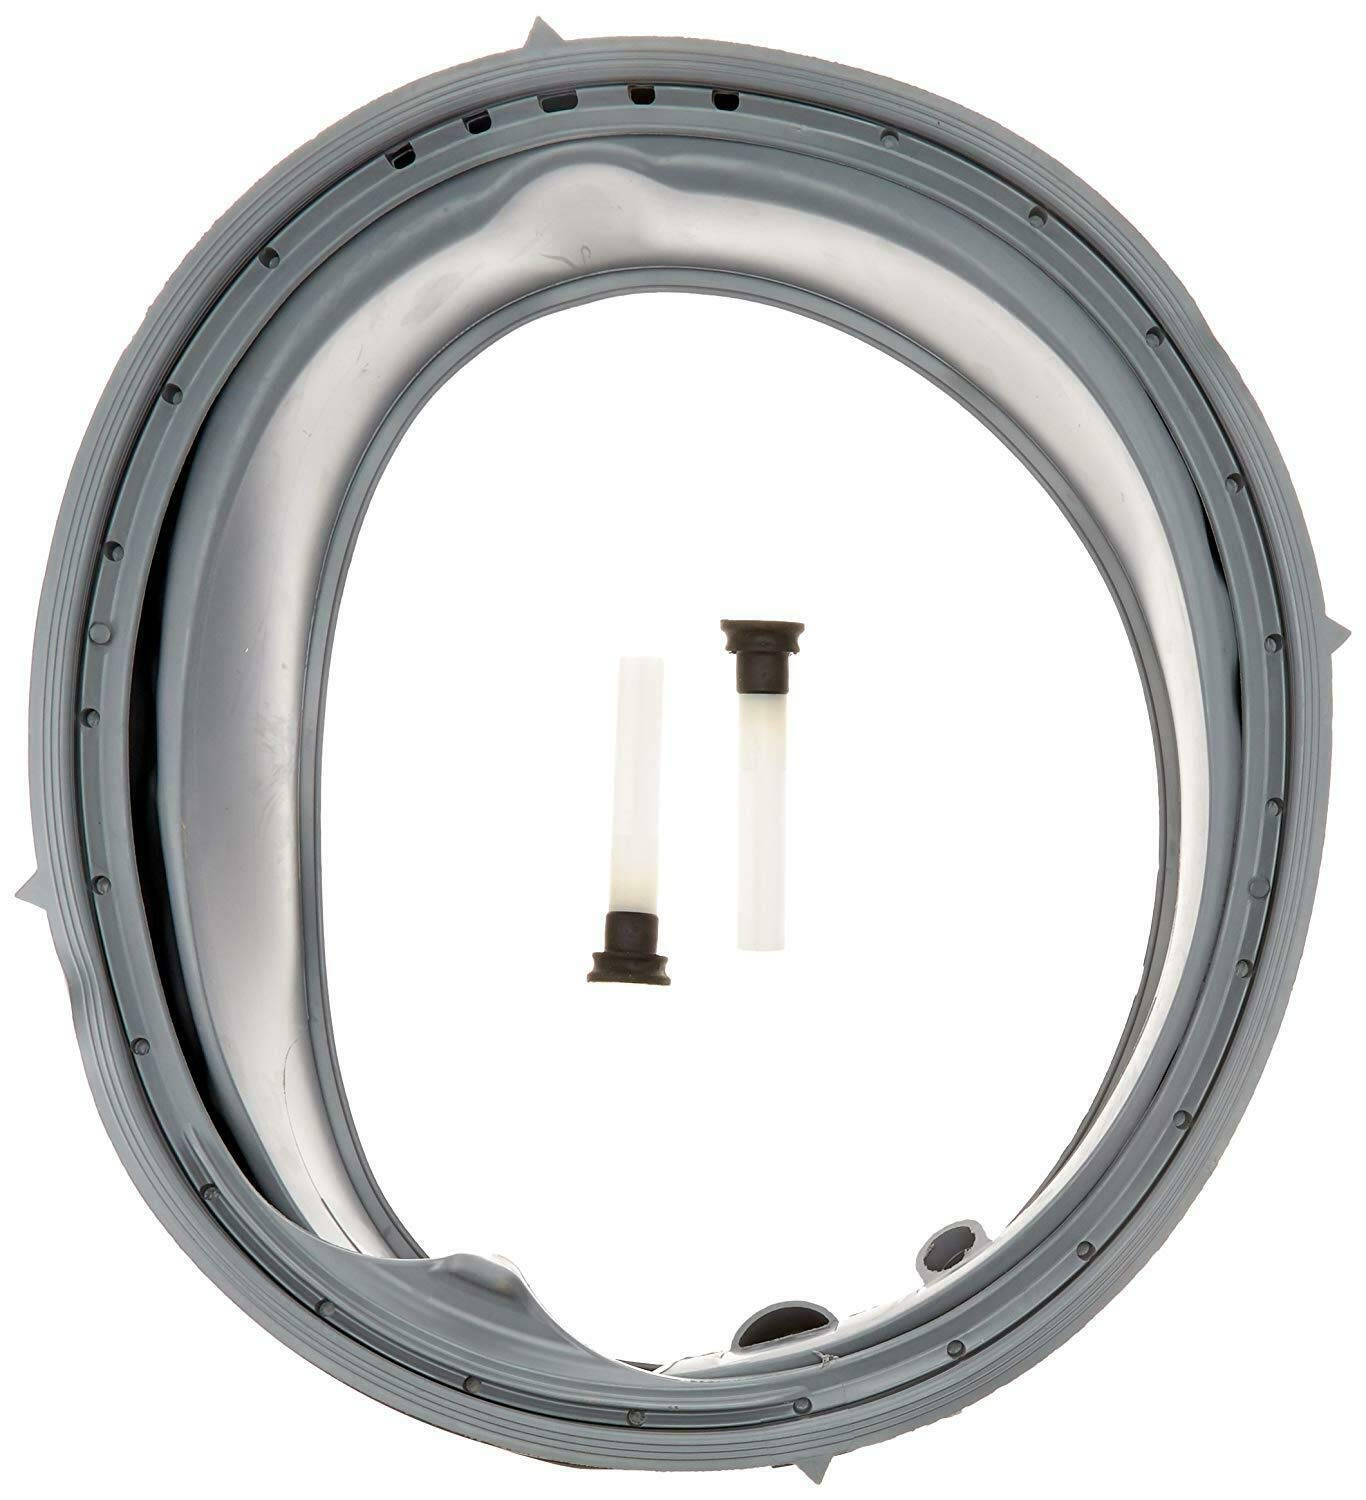 NEW 134515300 Washer door Bellow Compatible for Frigidaire Kenmore, GE, Crosley by OEM Manufacturer 134515300-FR, 134365200, 137566001,137566000, 134515300-KE, AP3869103, PS1148773-1 YEAR WARRANTY